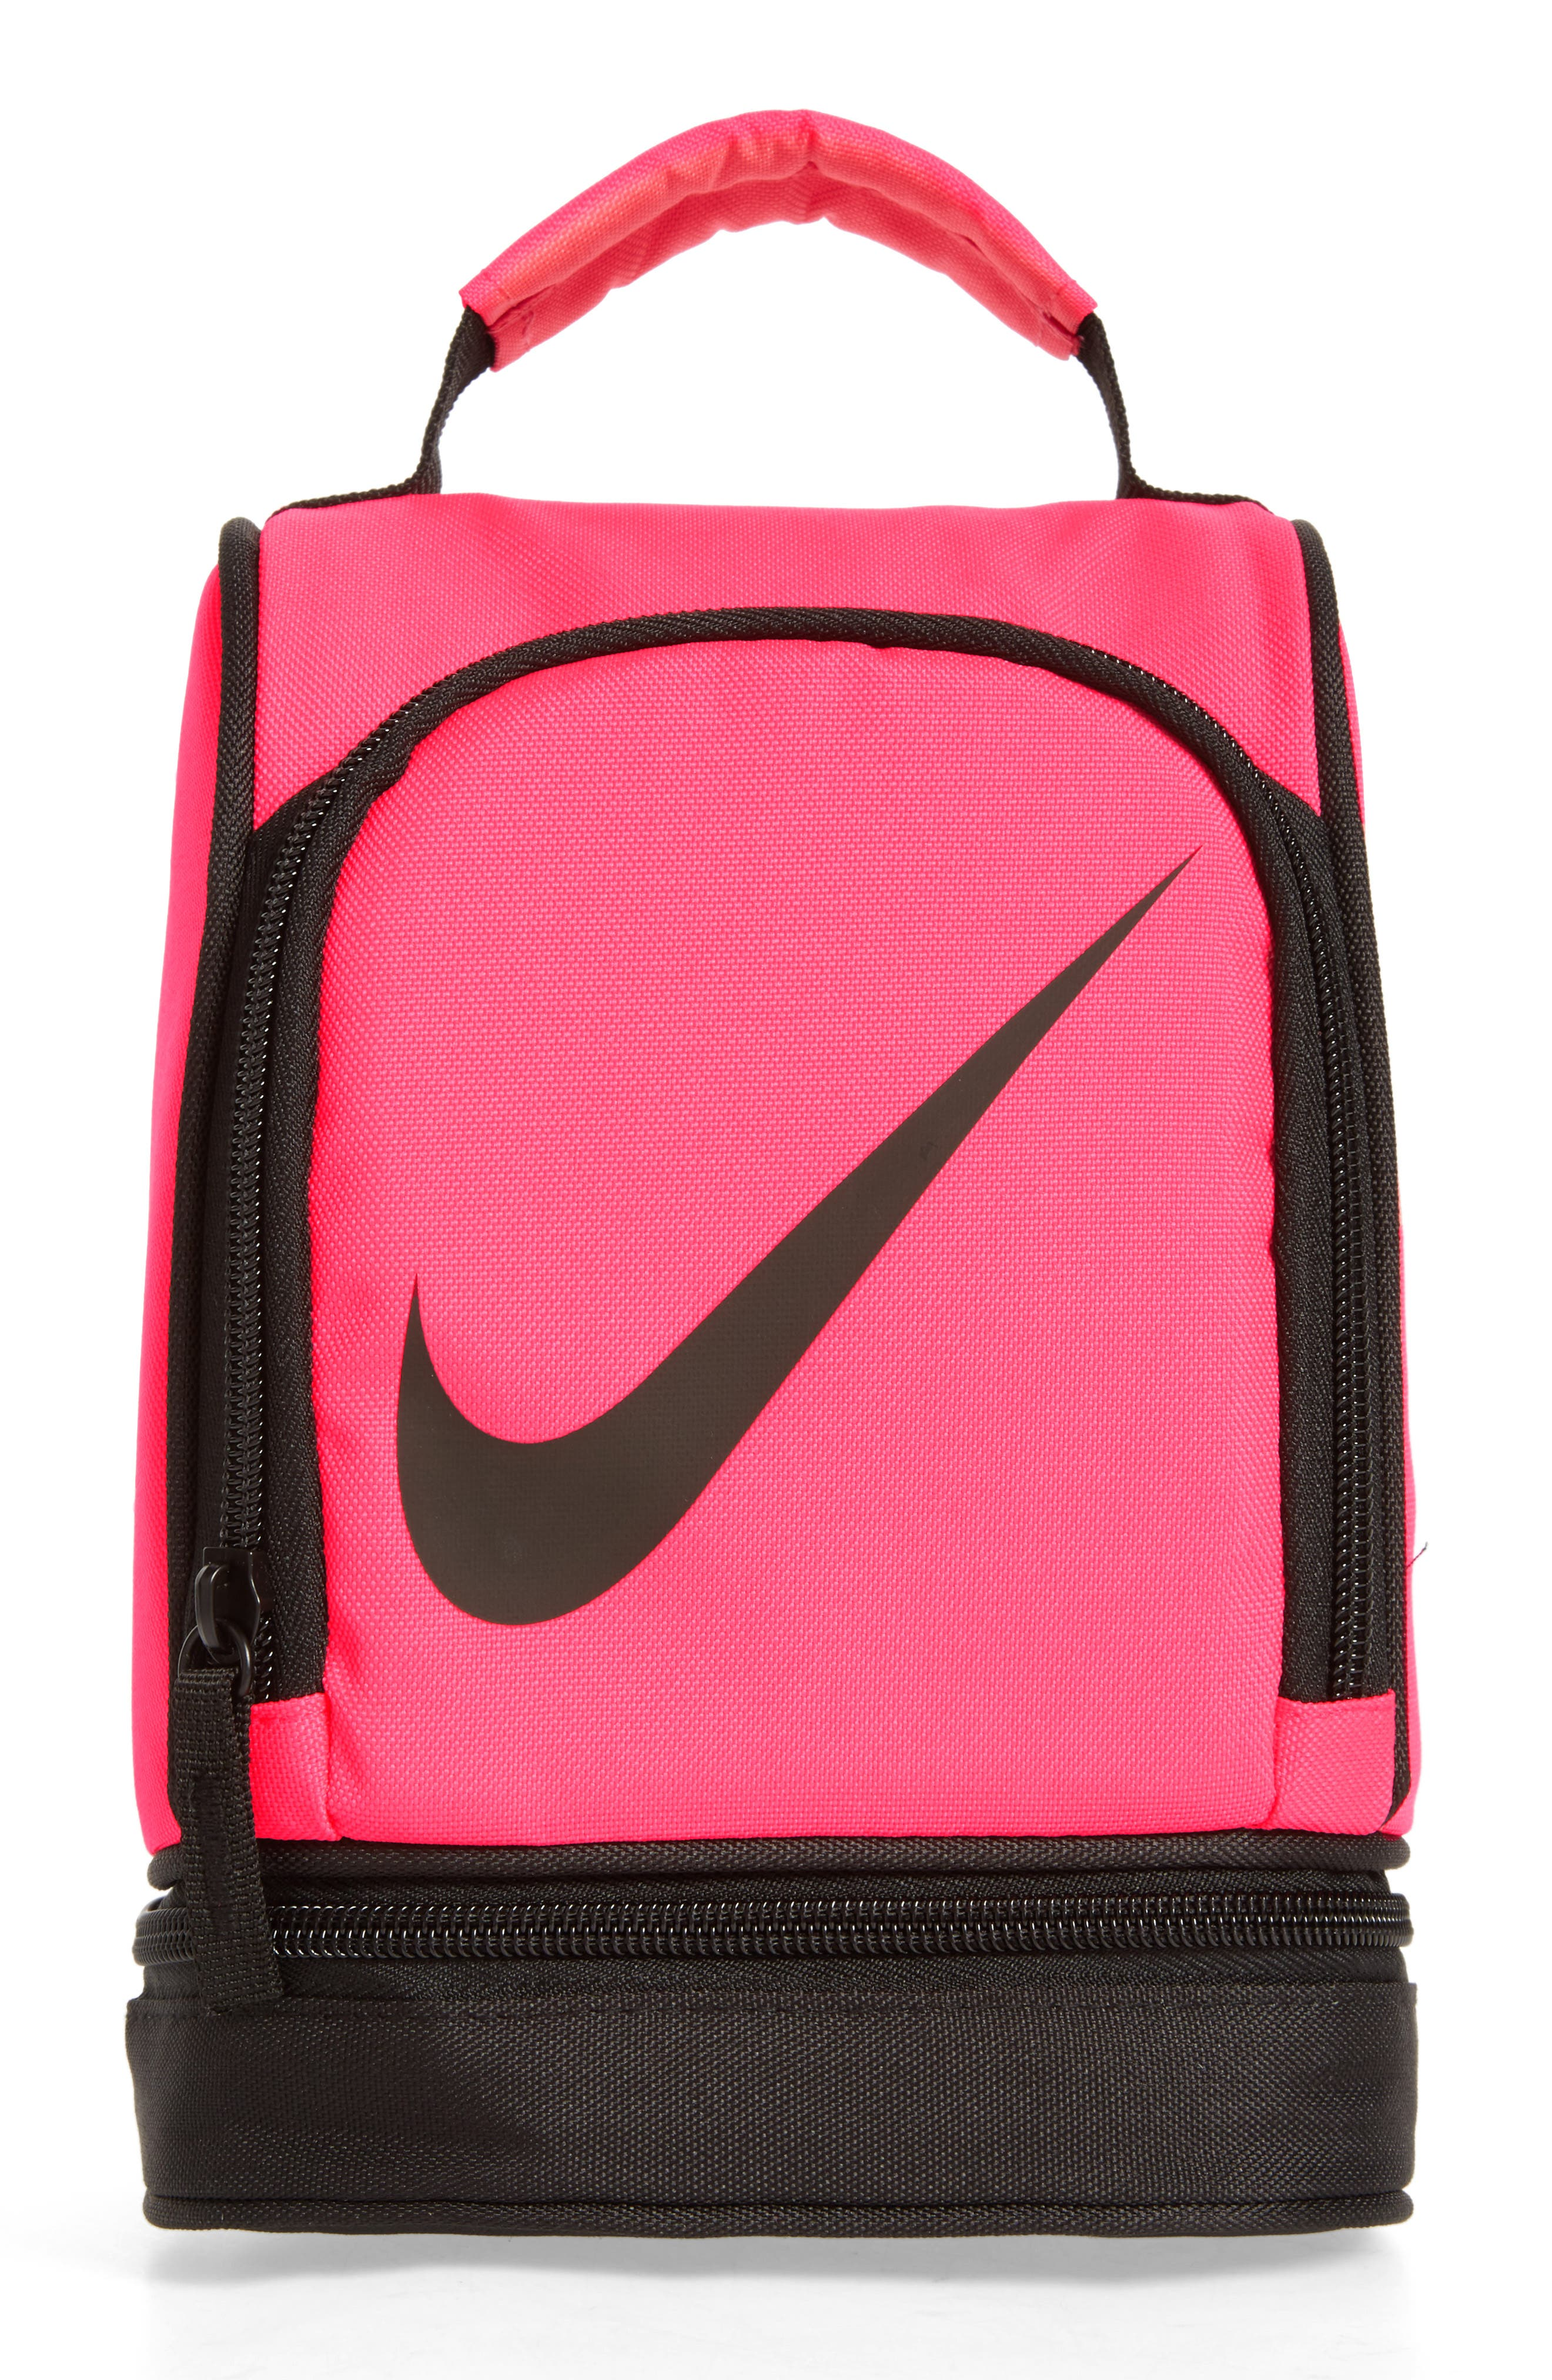 Nike Insulated Lunch Tote